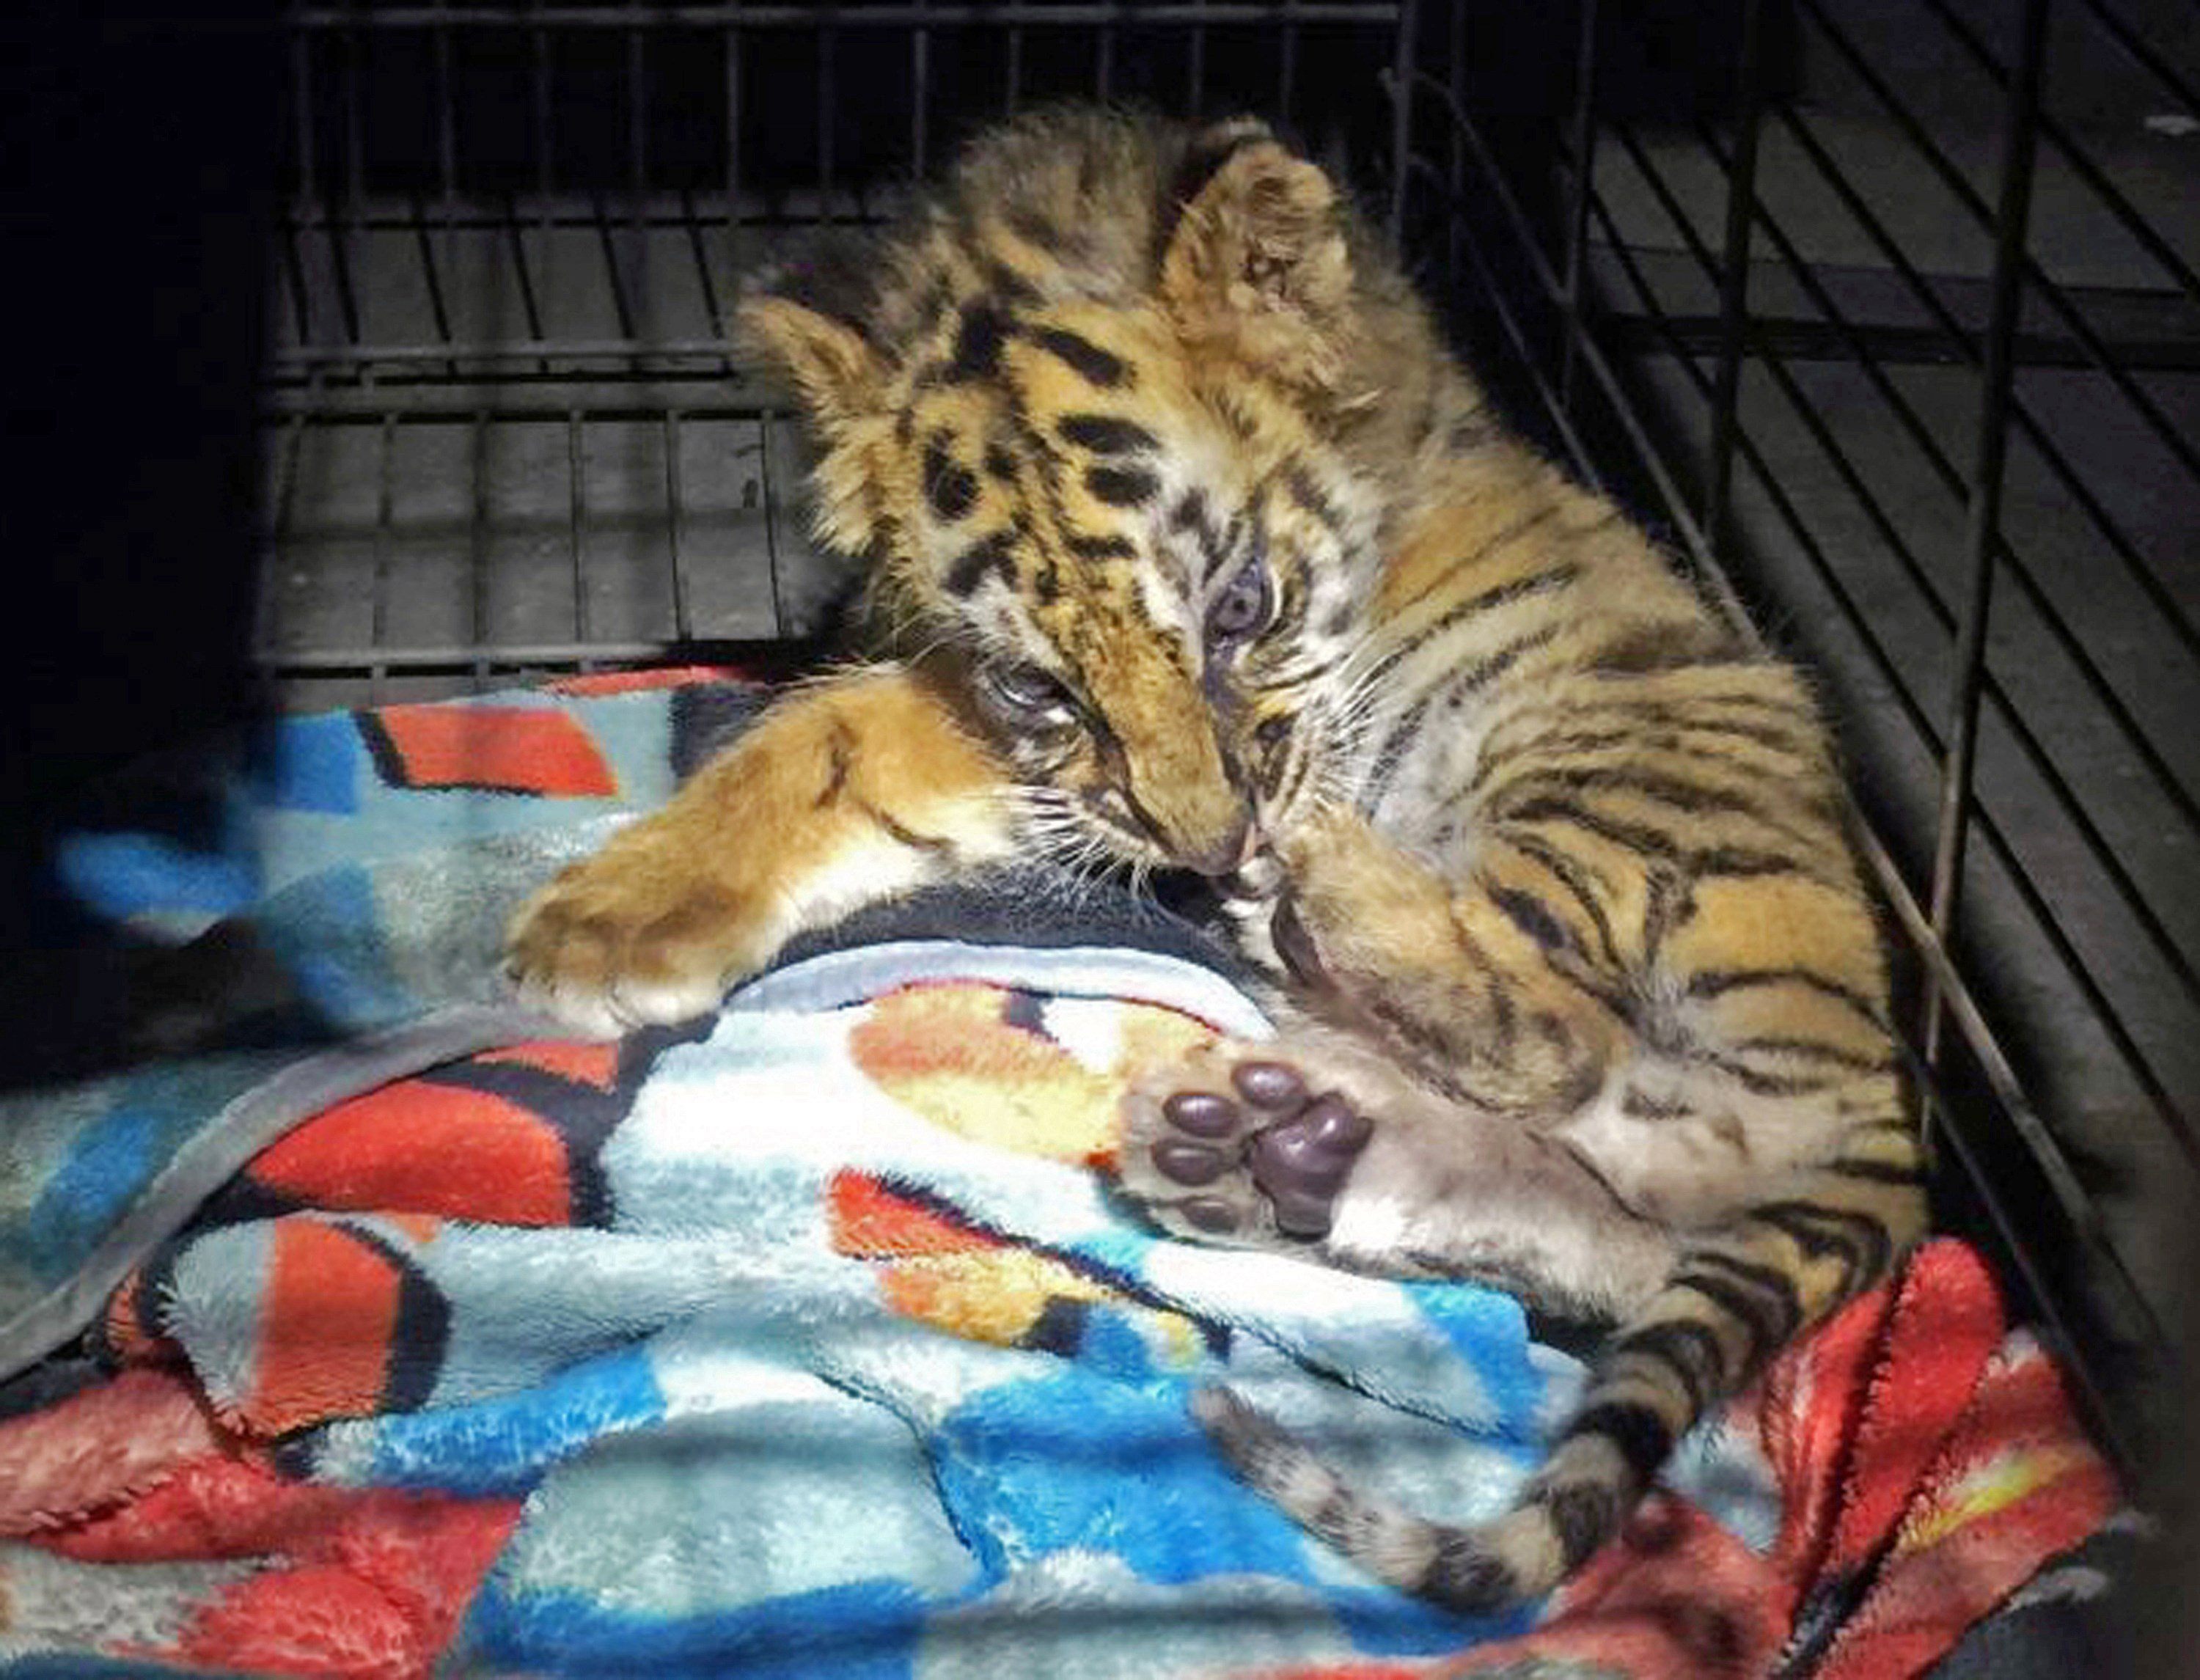 FILE - This Aug. 23, 2017 file photo provided by the U.S. Customs and Border Protection shows a male tiger cub that was confiscated at the U.S. border crossing at Otay Mesa  Wednesday, Oct. 18, 2017.